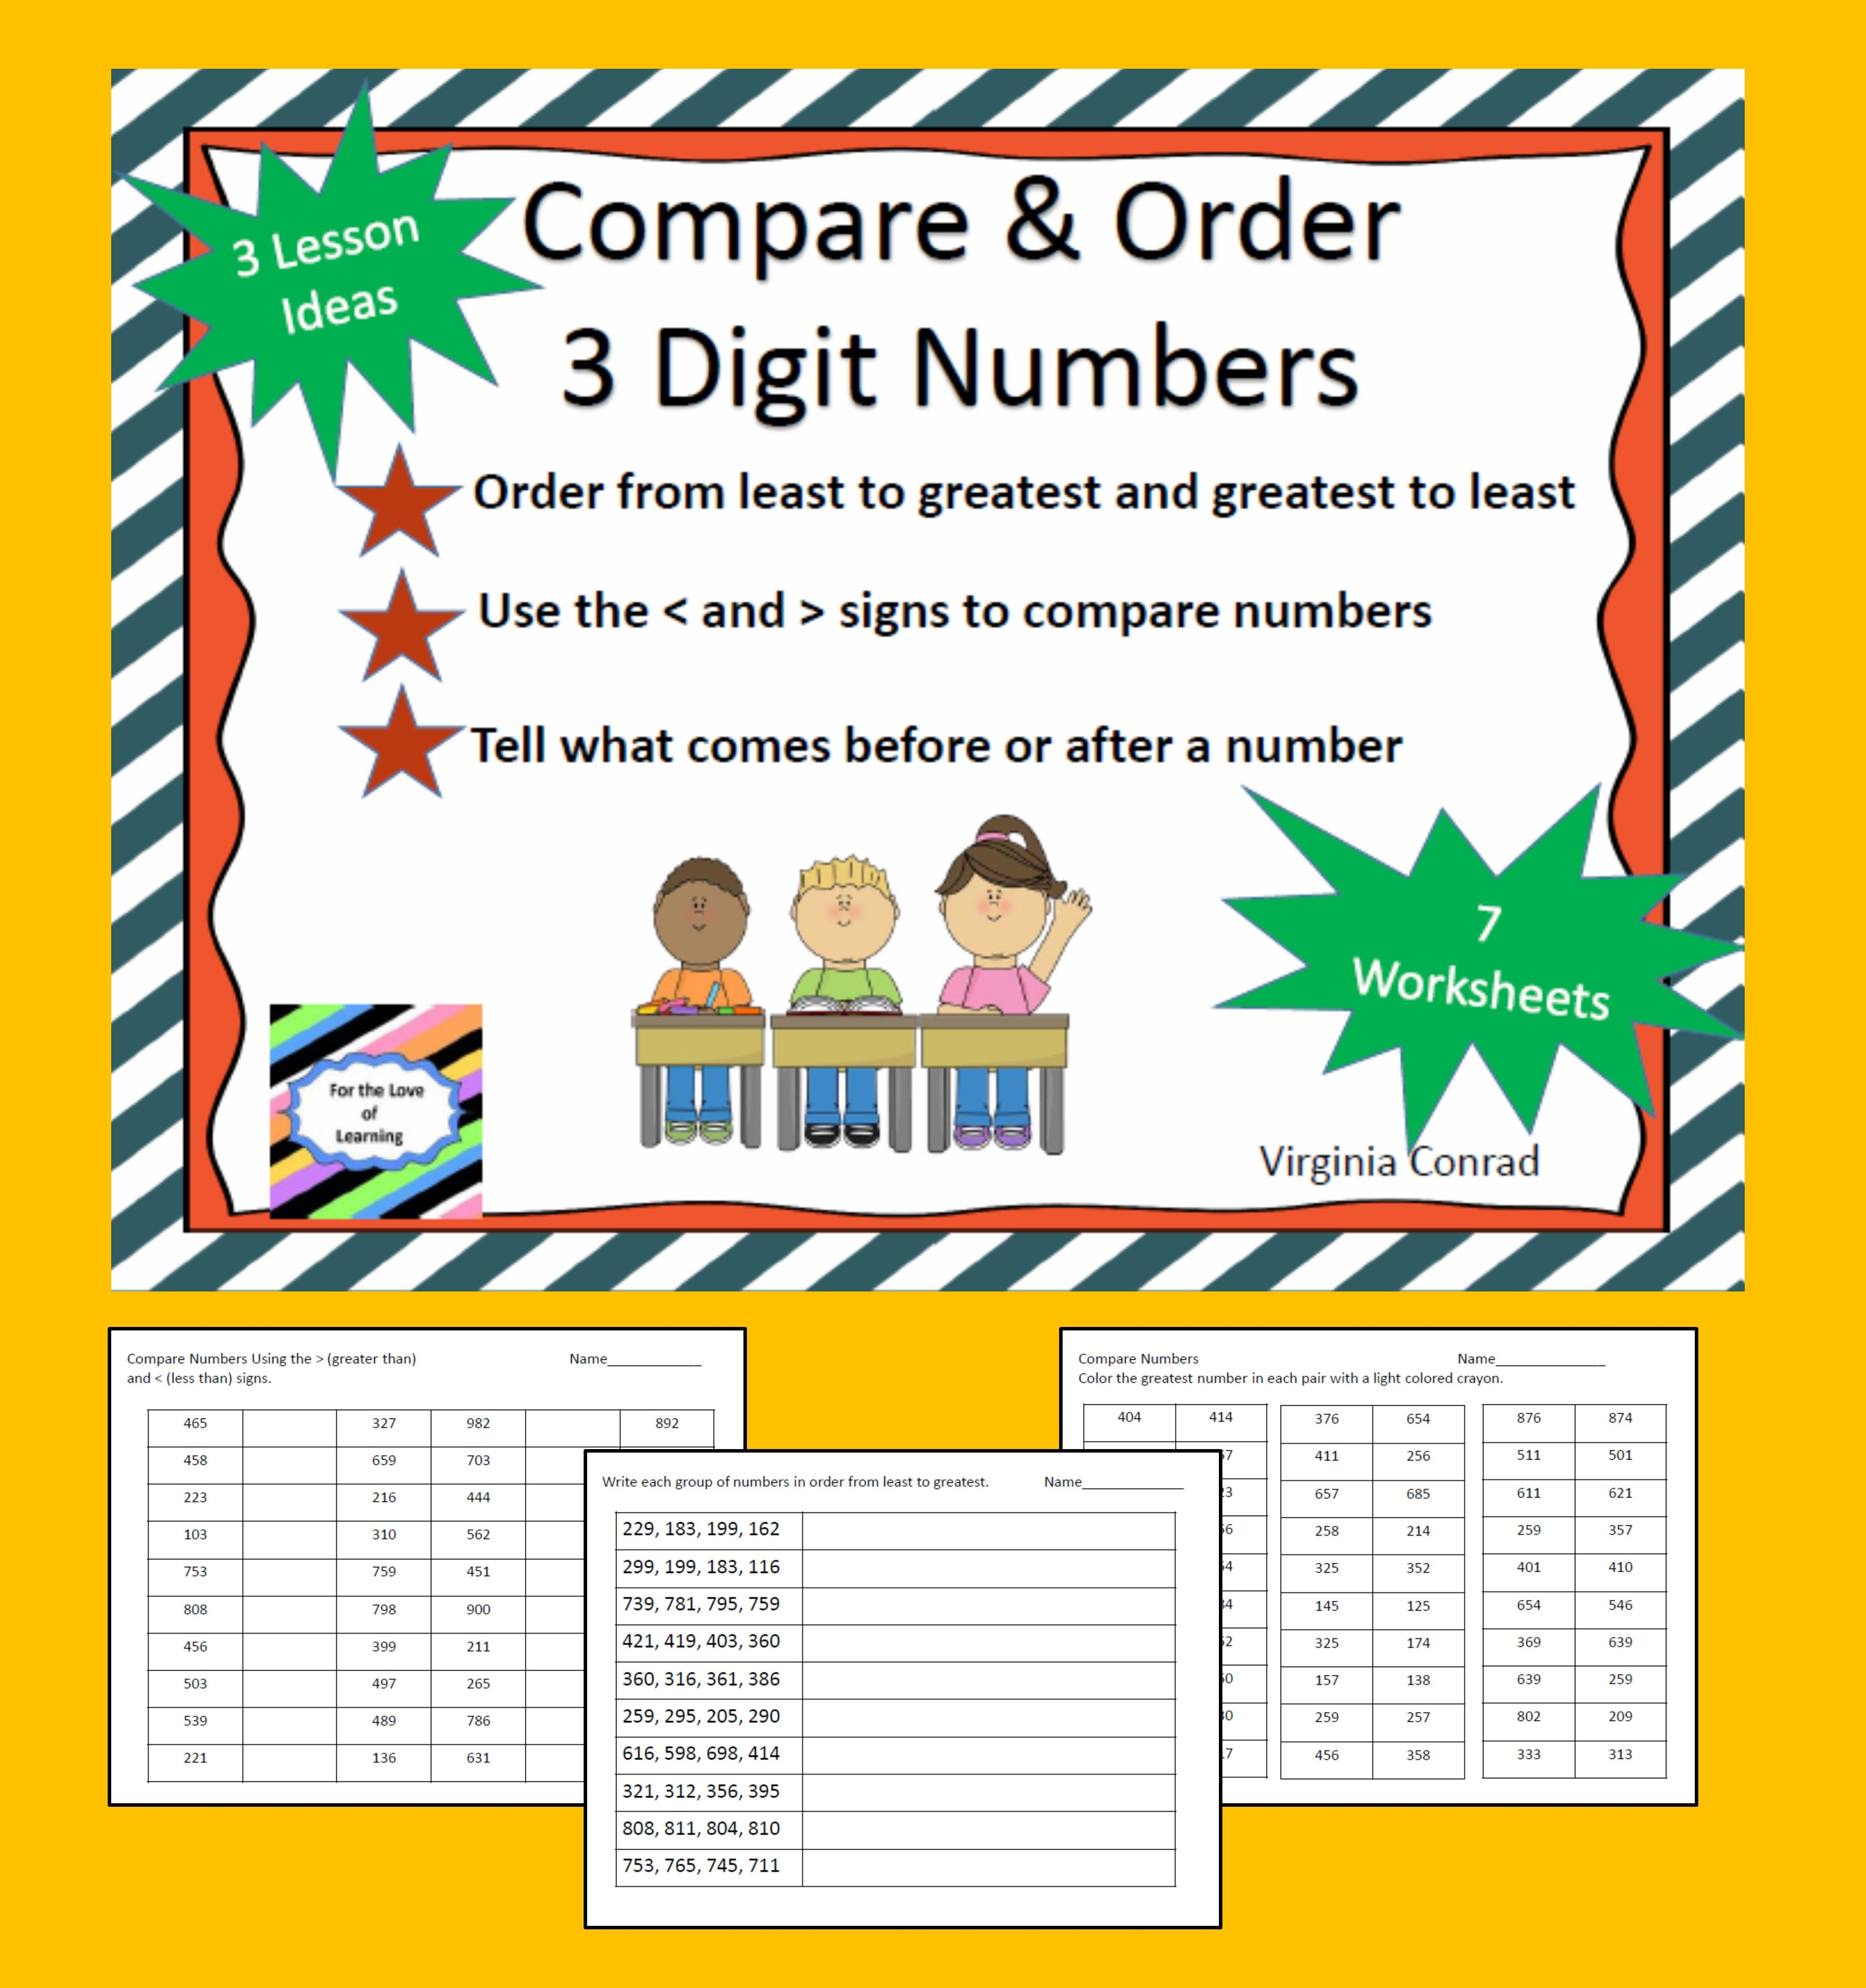 Activities And Worksheets For Comparing And Ordering 3 Digit Numbers